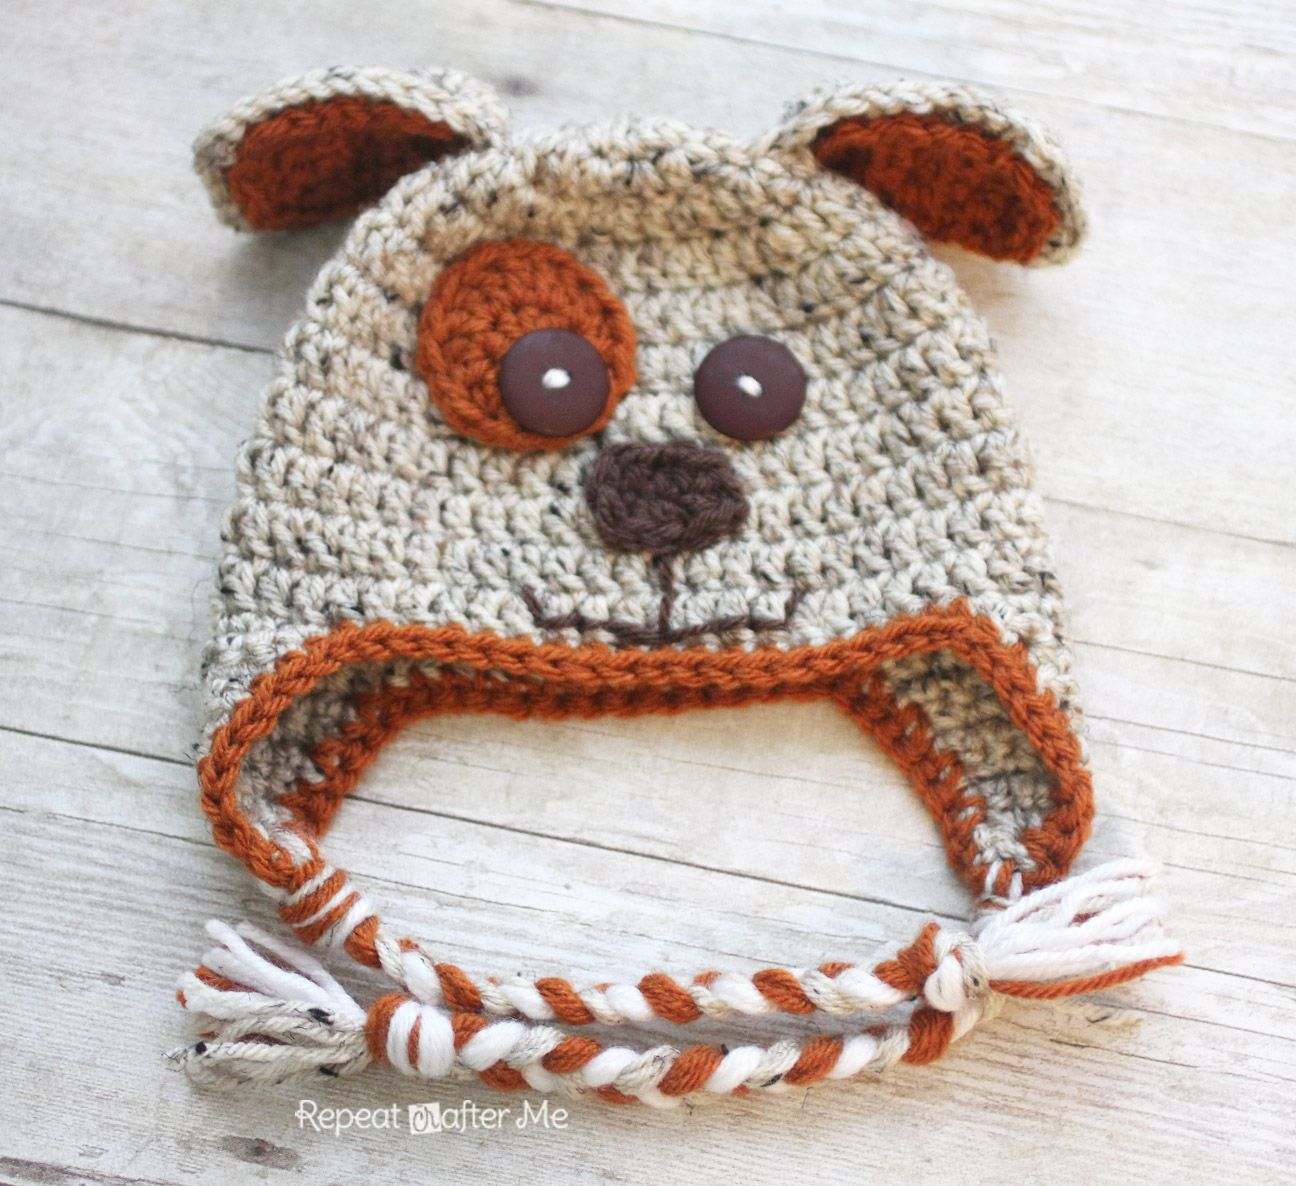 Crochet puppy hat pattern repeat crafter me crochet and knits crochet puppy hat pattern repeat crafter me bankloansurffo Gallery